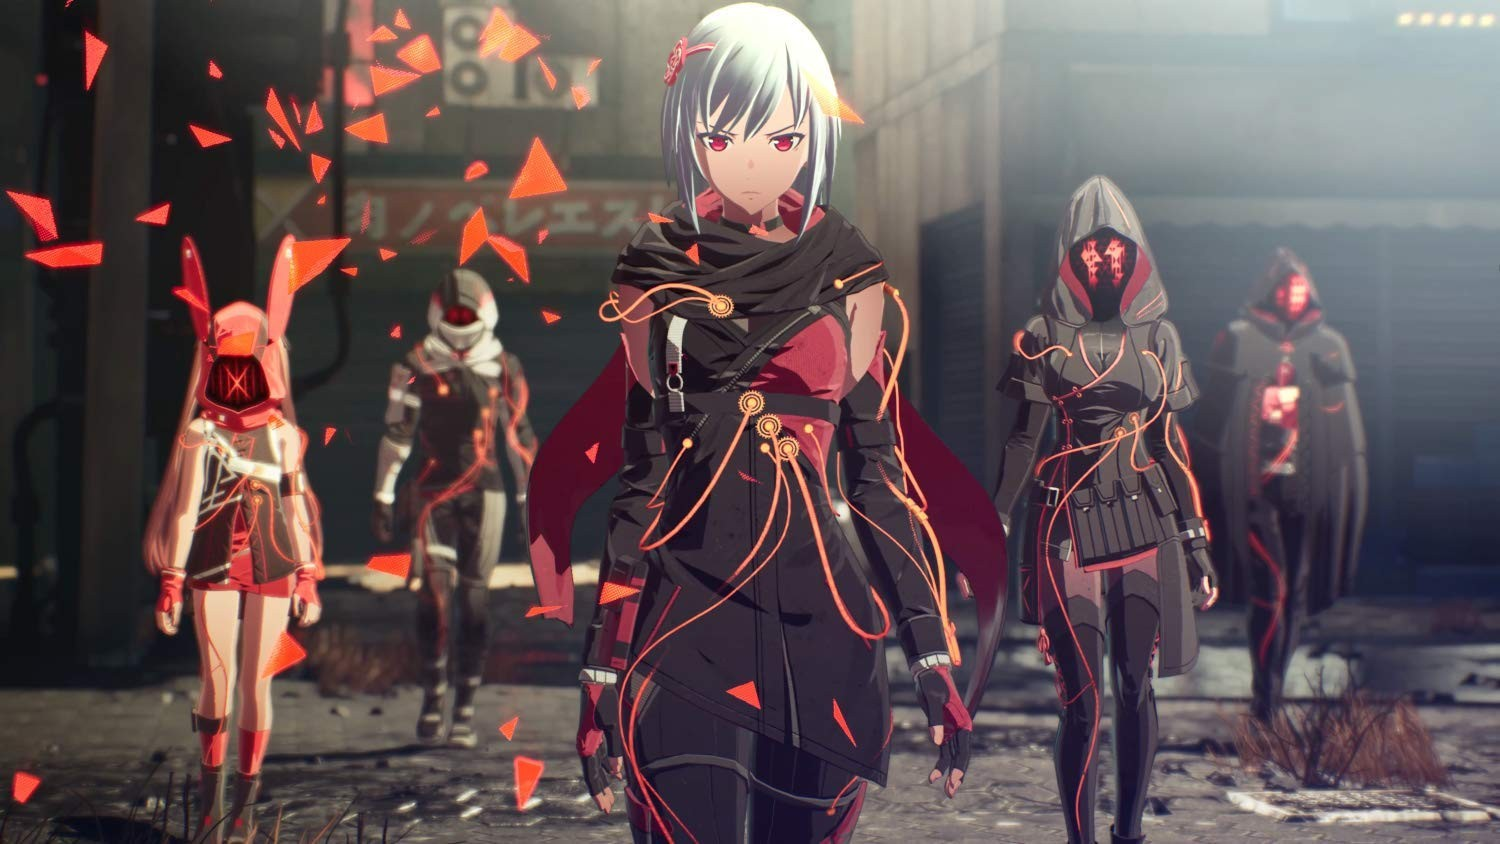 Scarlet Nexus, Bandai Namco, PS4, PlayStation 4, PS5, PlayStation 5, XONE, Xbox One, XSX, Xbox Series X, US, North America, release date, trailer, features, screenshots, pre-order now